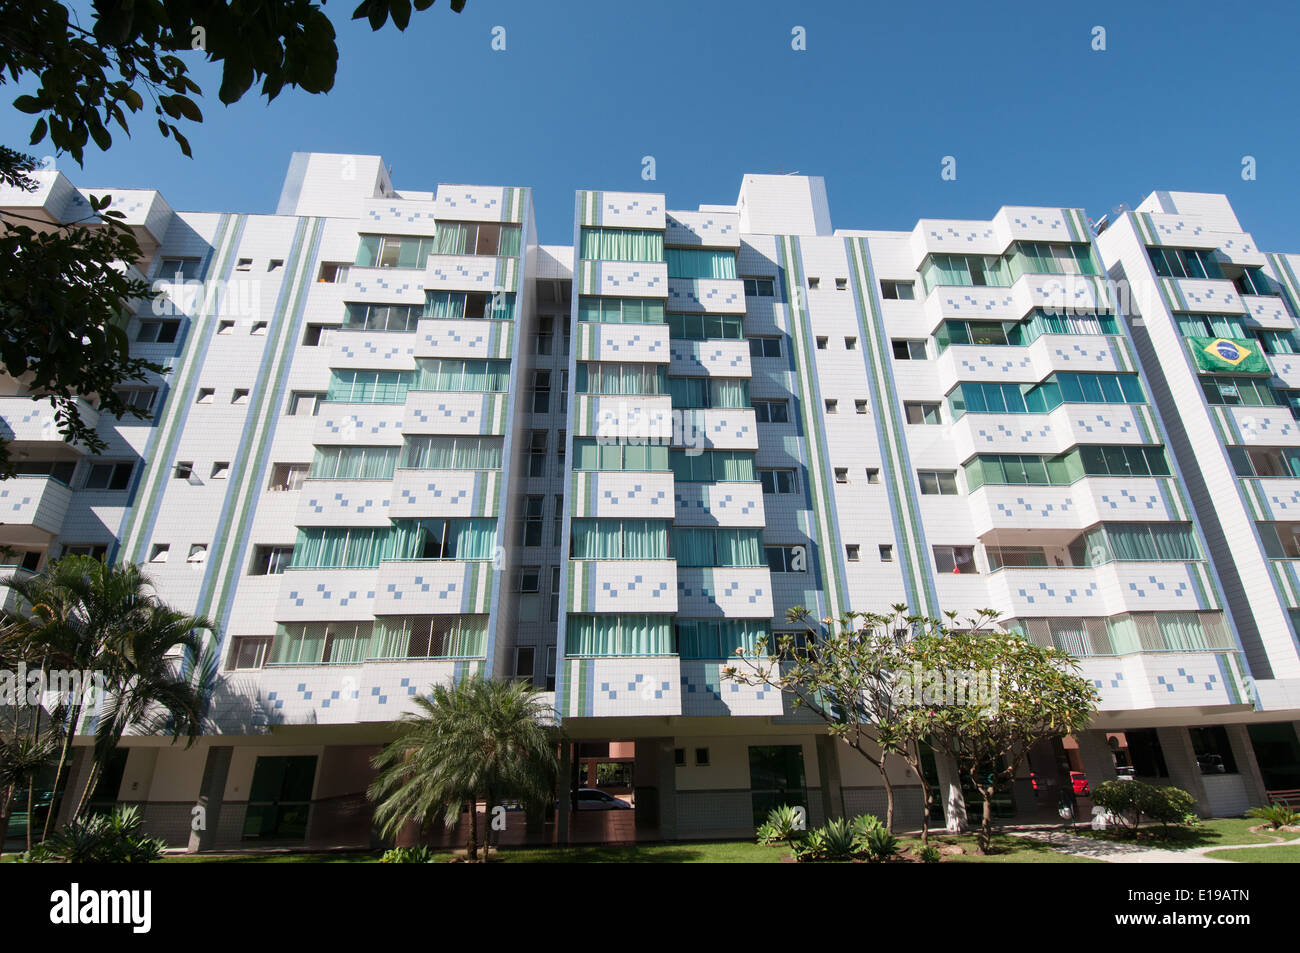 Residential buildings blocks Brasilia Brazil - Stock Image